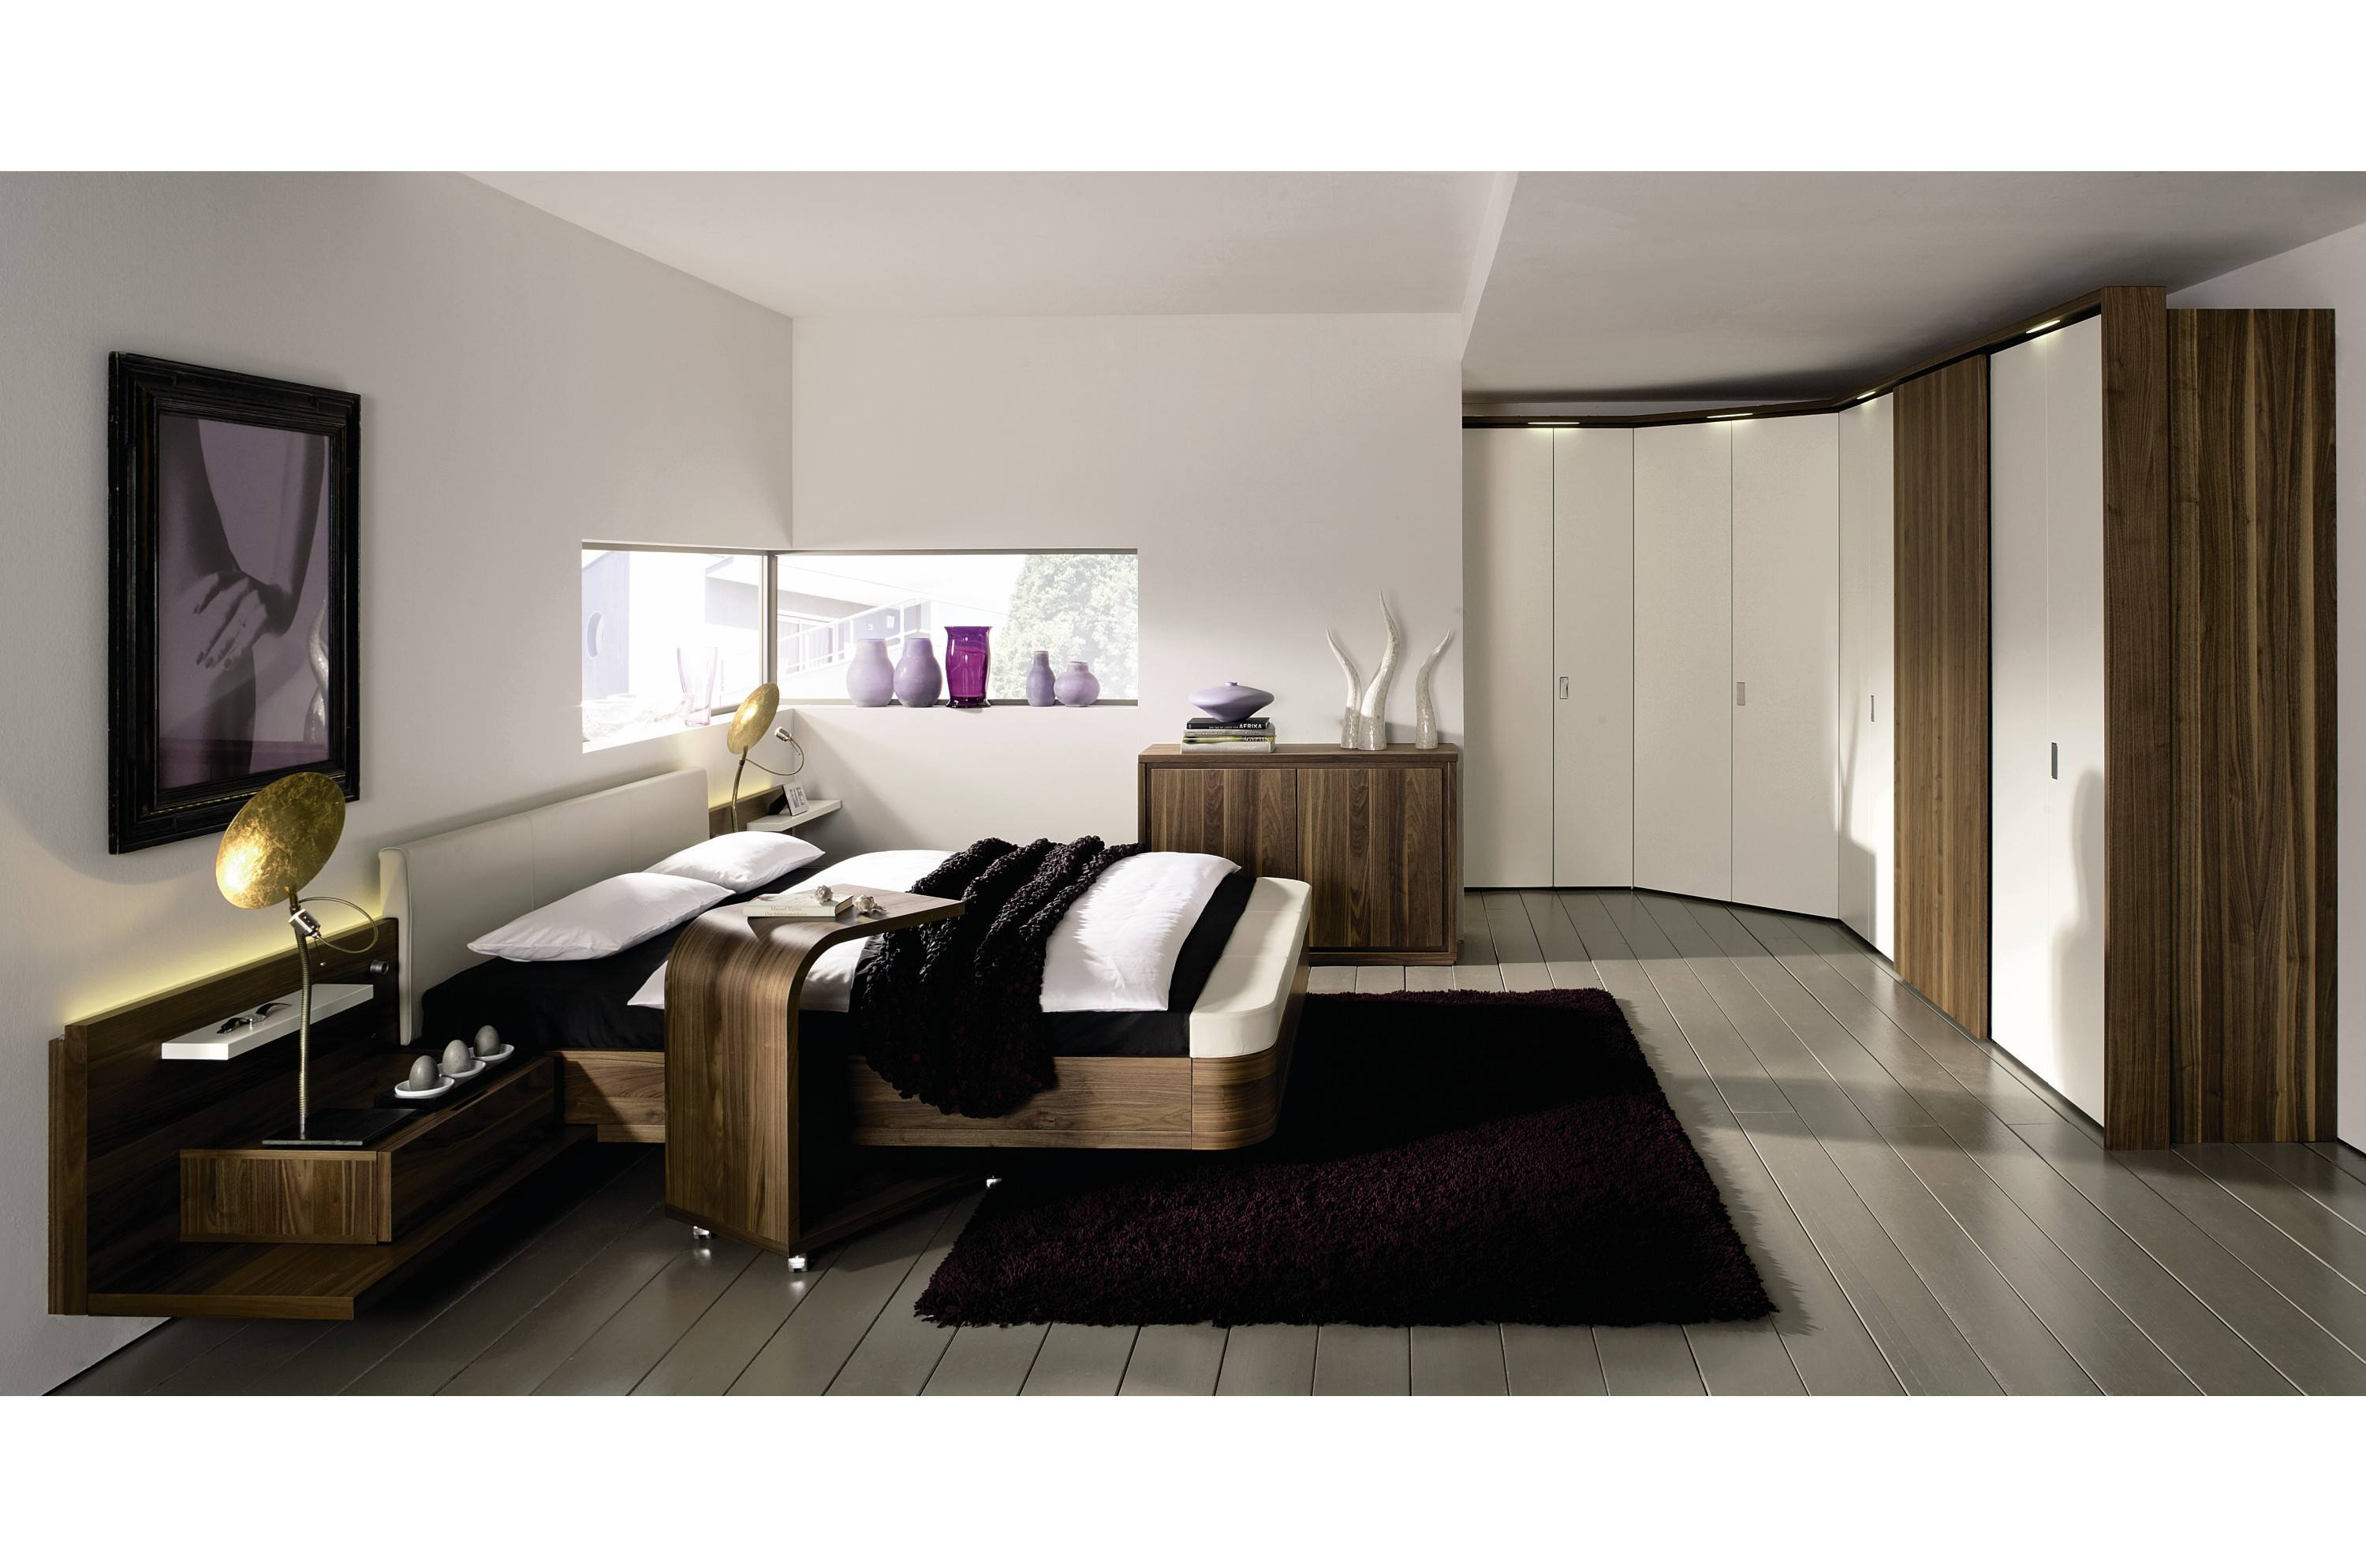 Wooden floor, cream walls, dark wood bed and wide fitted wardrobes